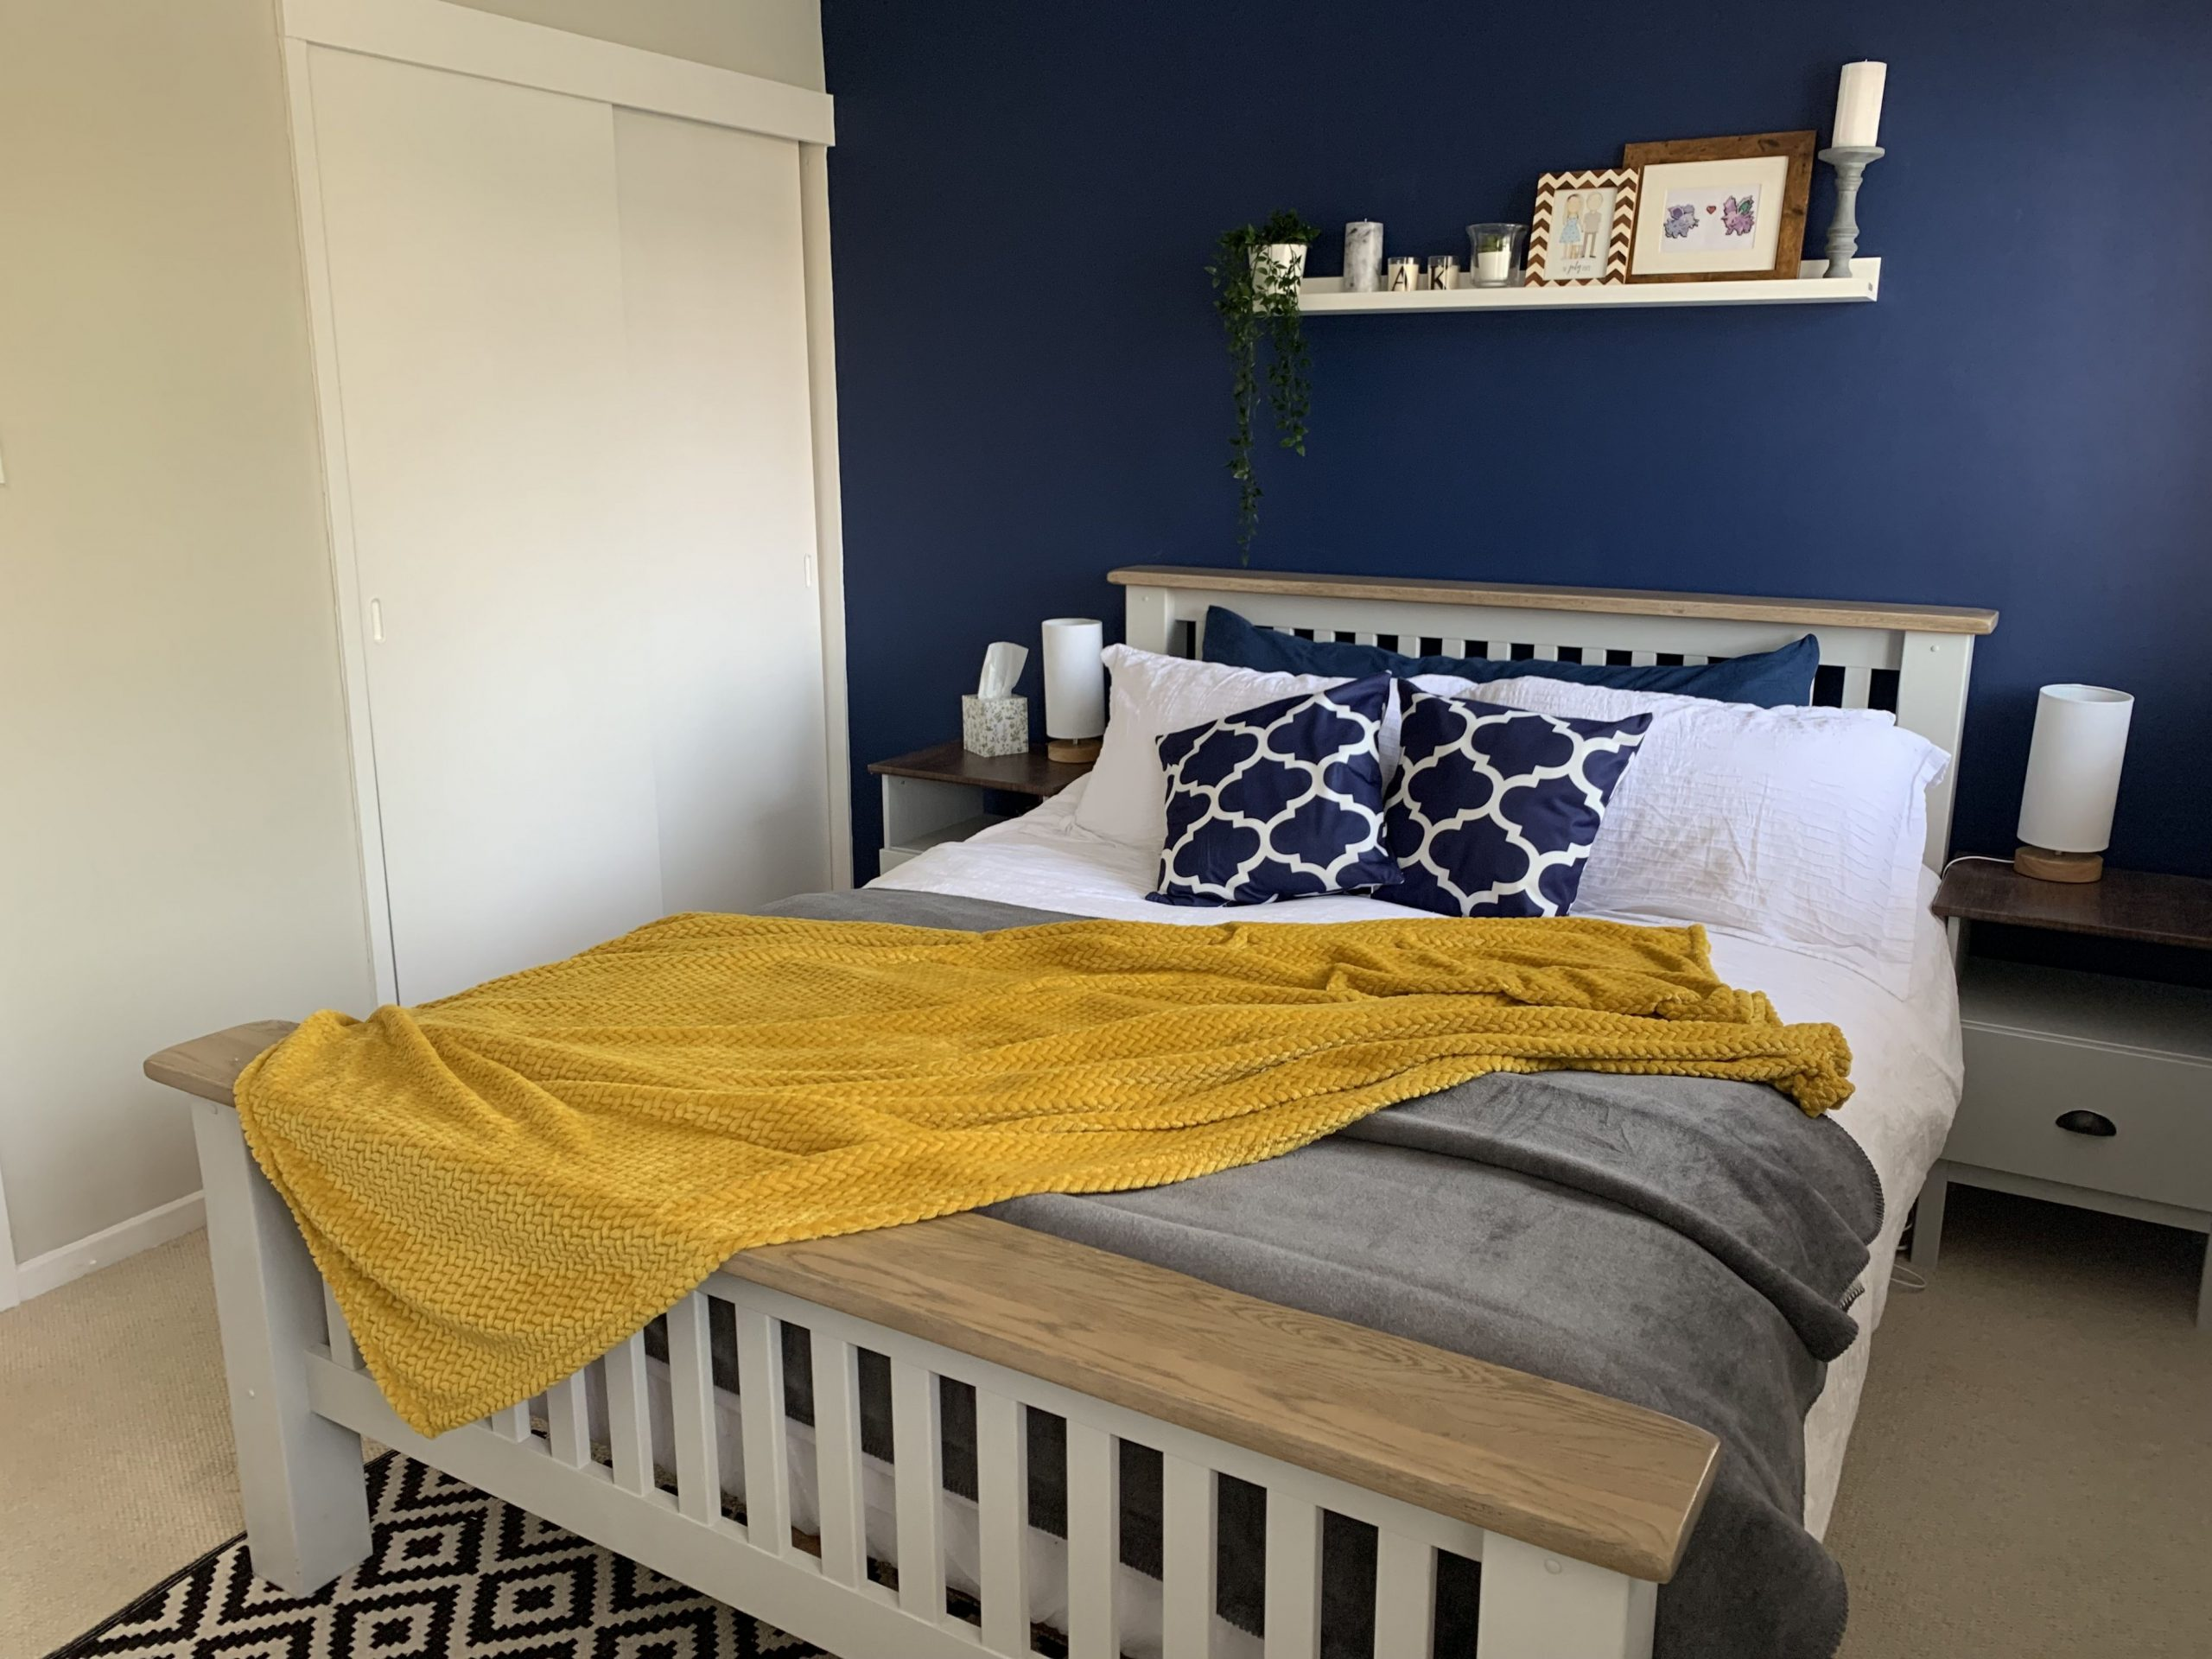 Gray navy mustard bedroom  Grey bedroom decor, Mustard bedroom  - Bedroom Ideas Mustard